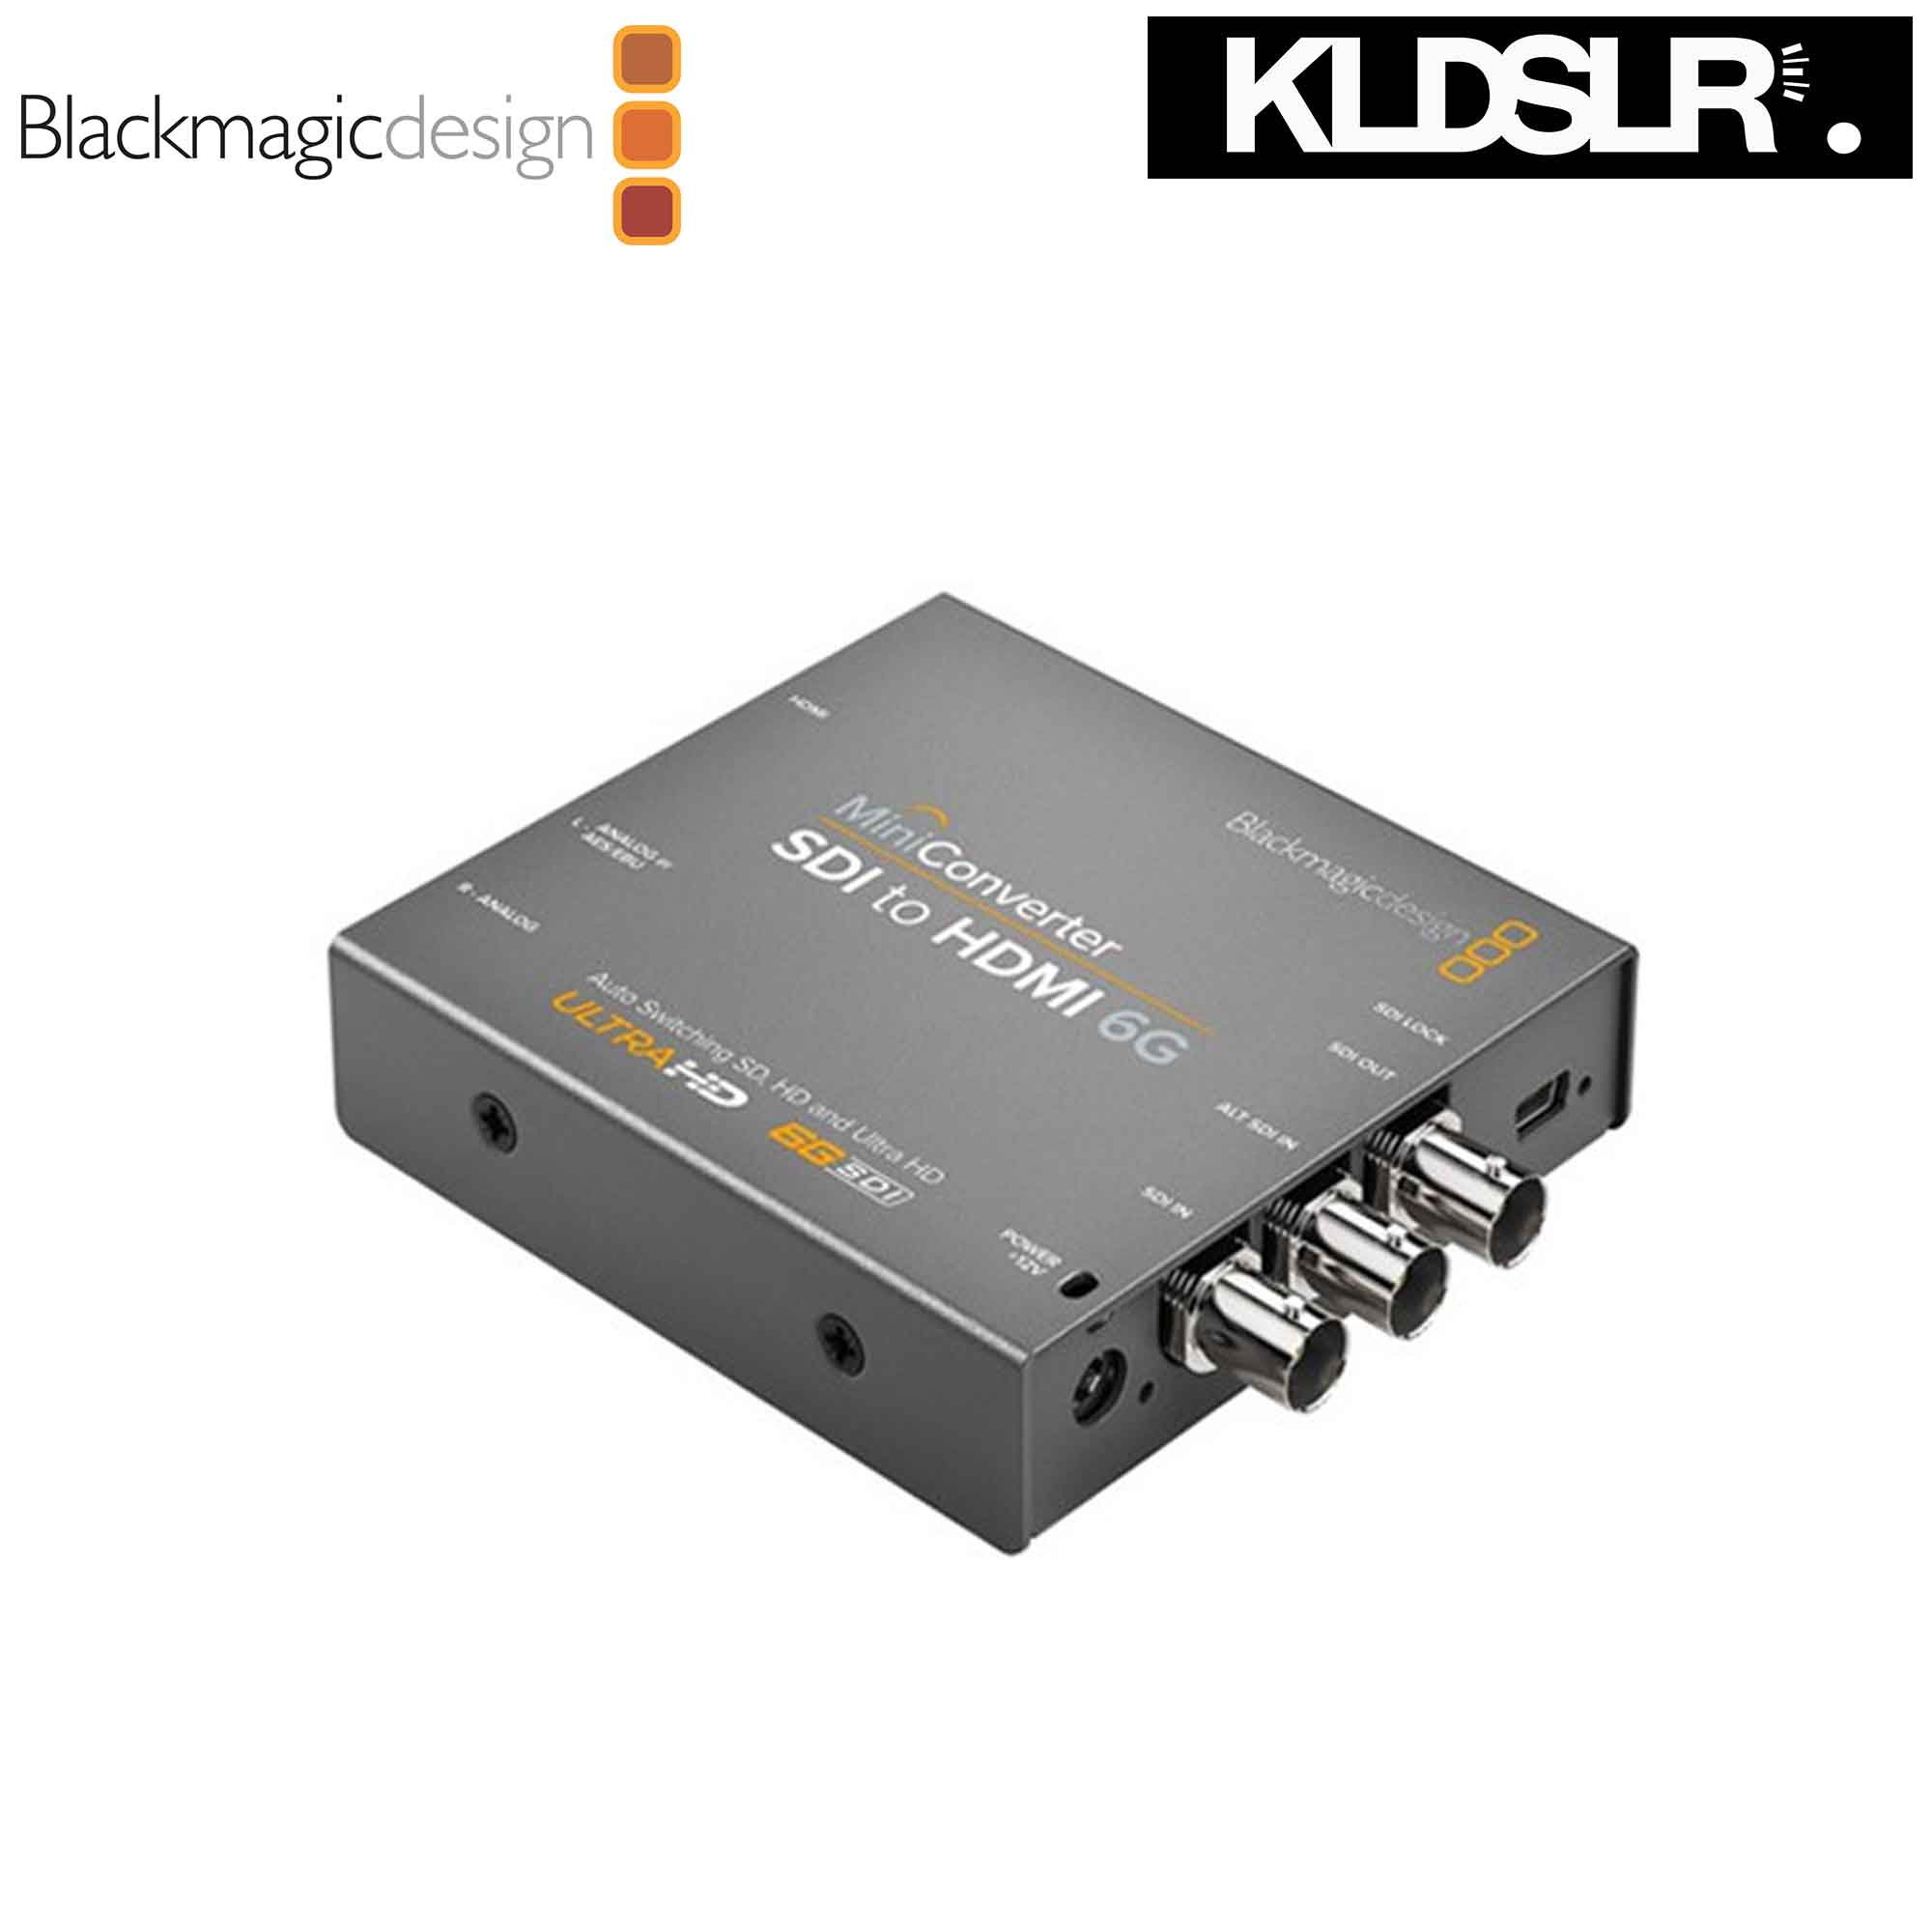 Blackmagic Design Mini Converter - SDI to HDMI 6G (Blackmagic Malaysia)